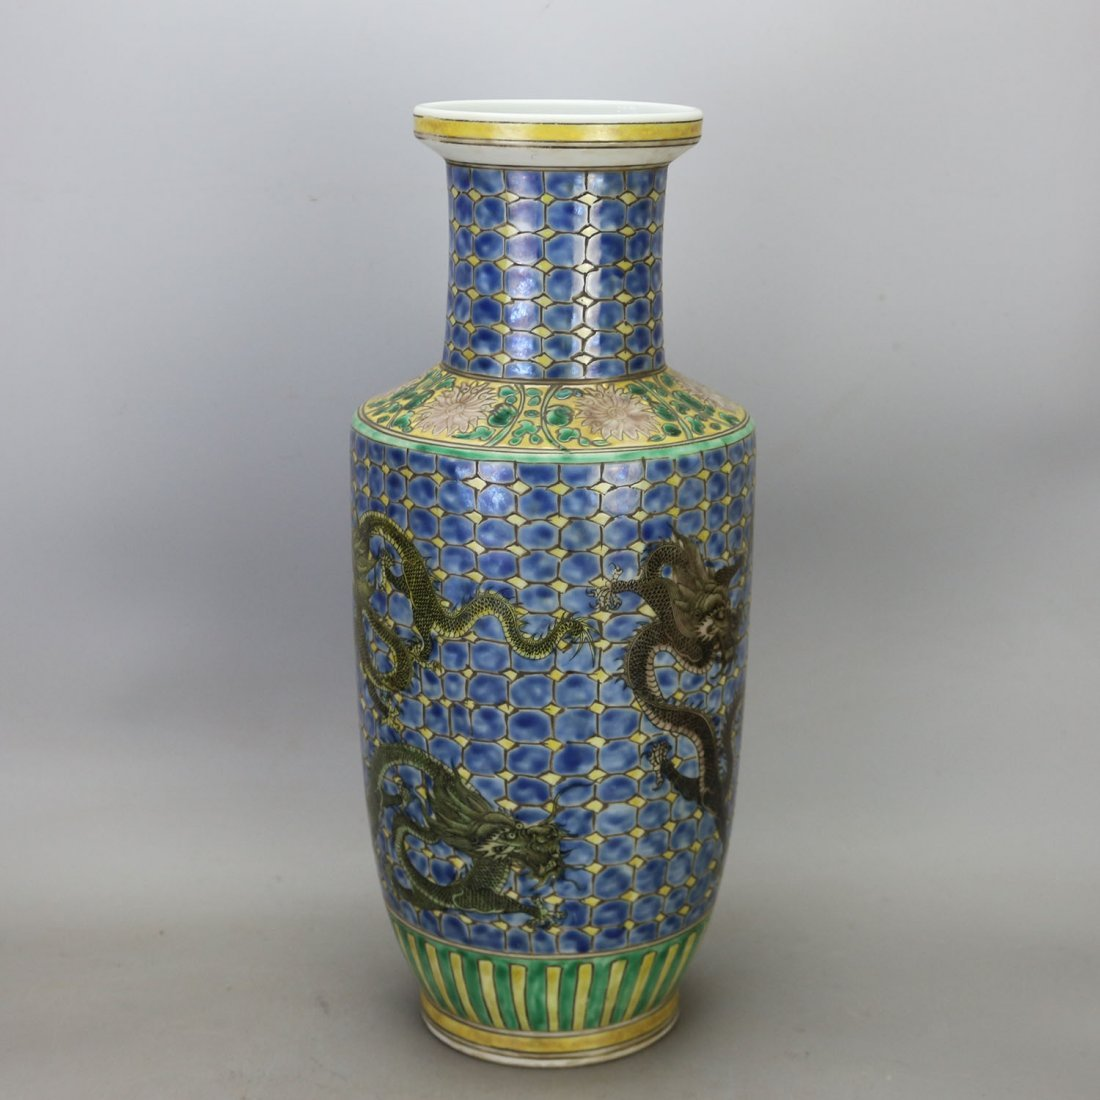 Chinese Qing dynasty Kangxi Three Dragon Porcelain Vase